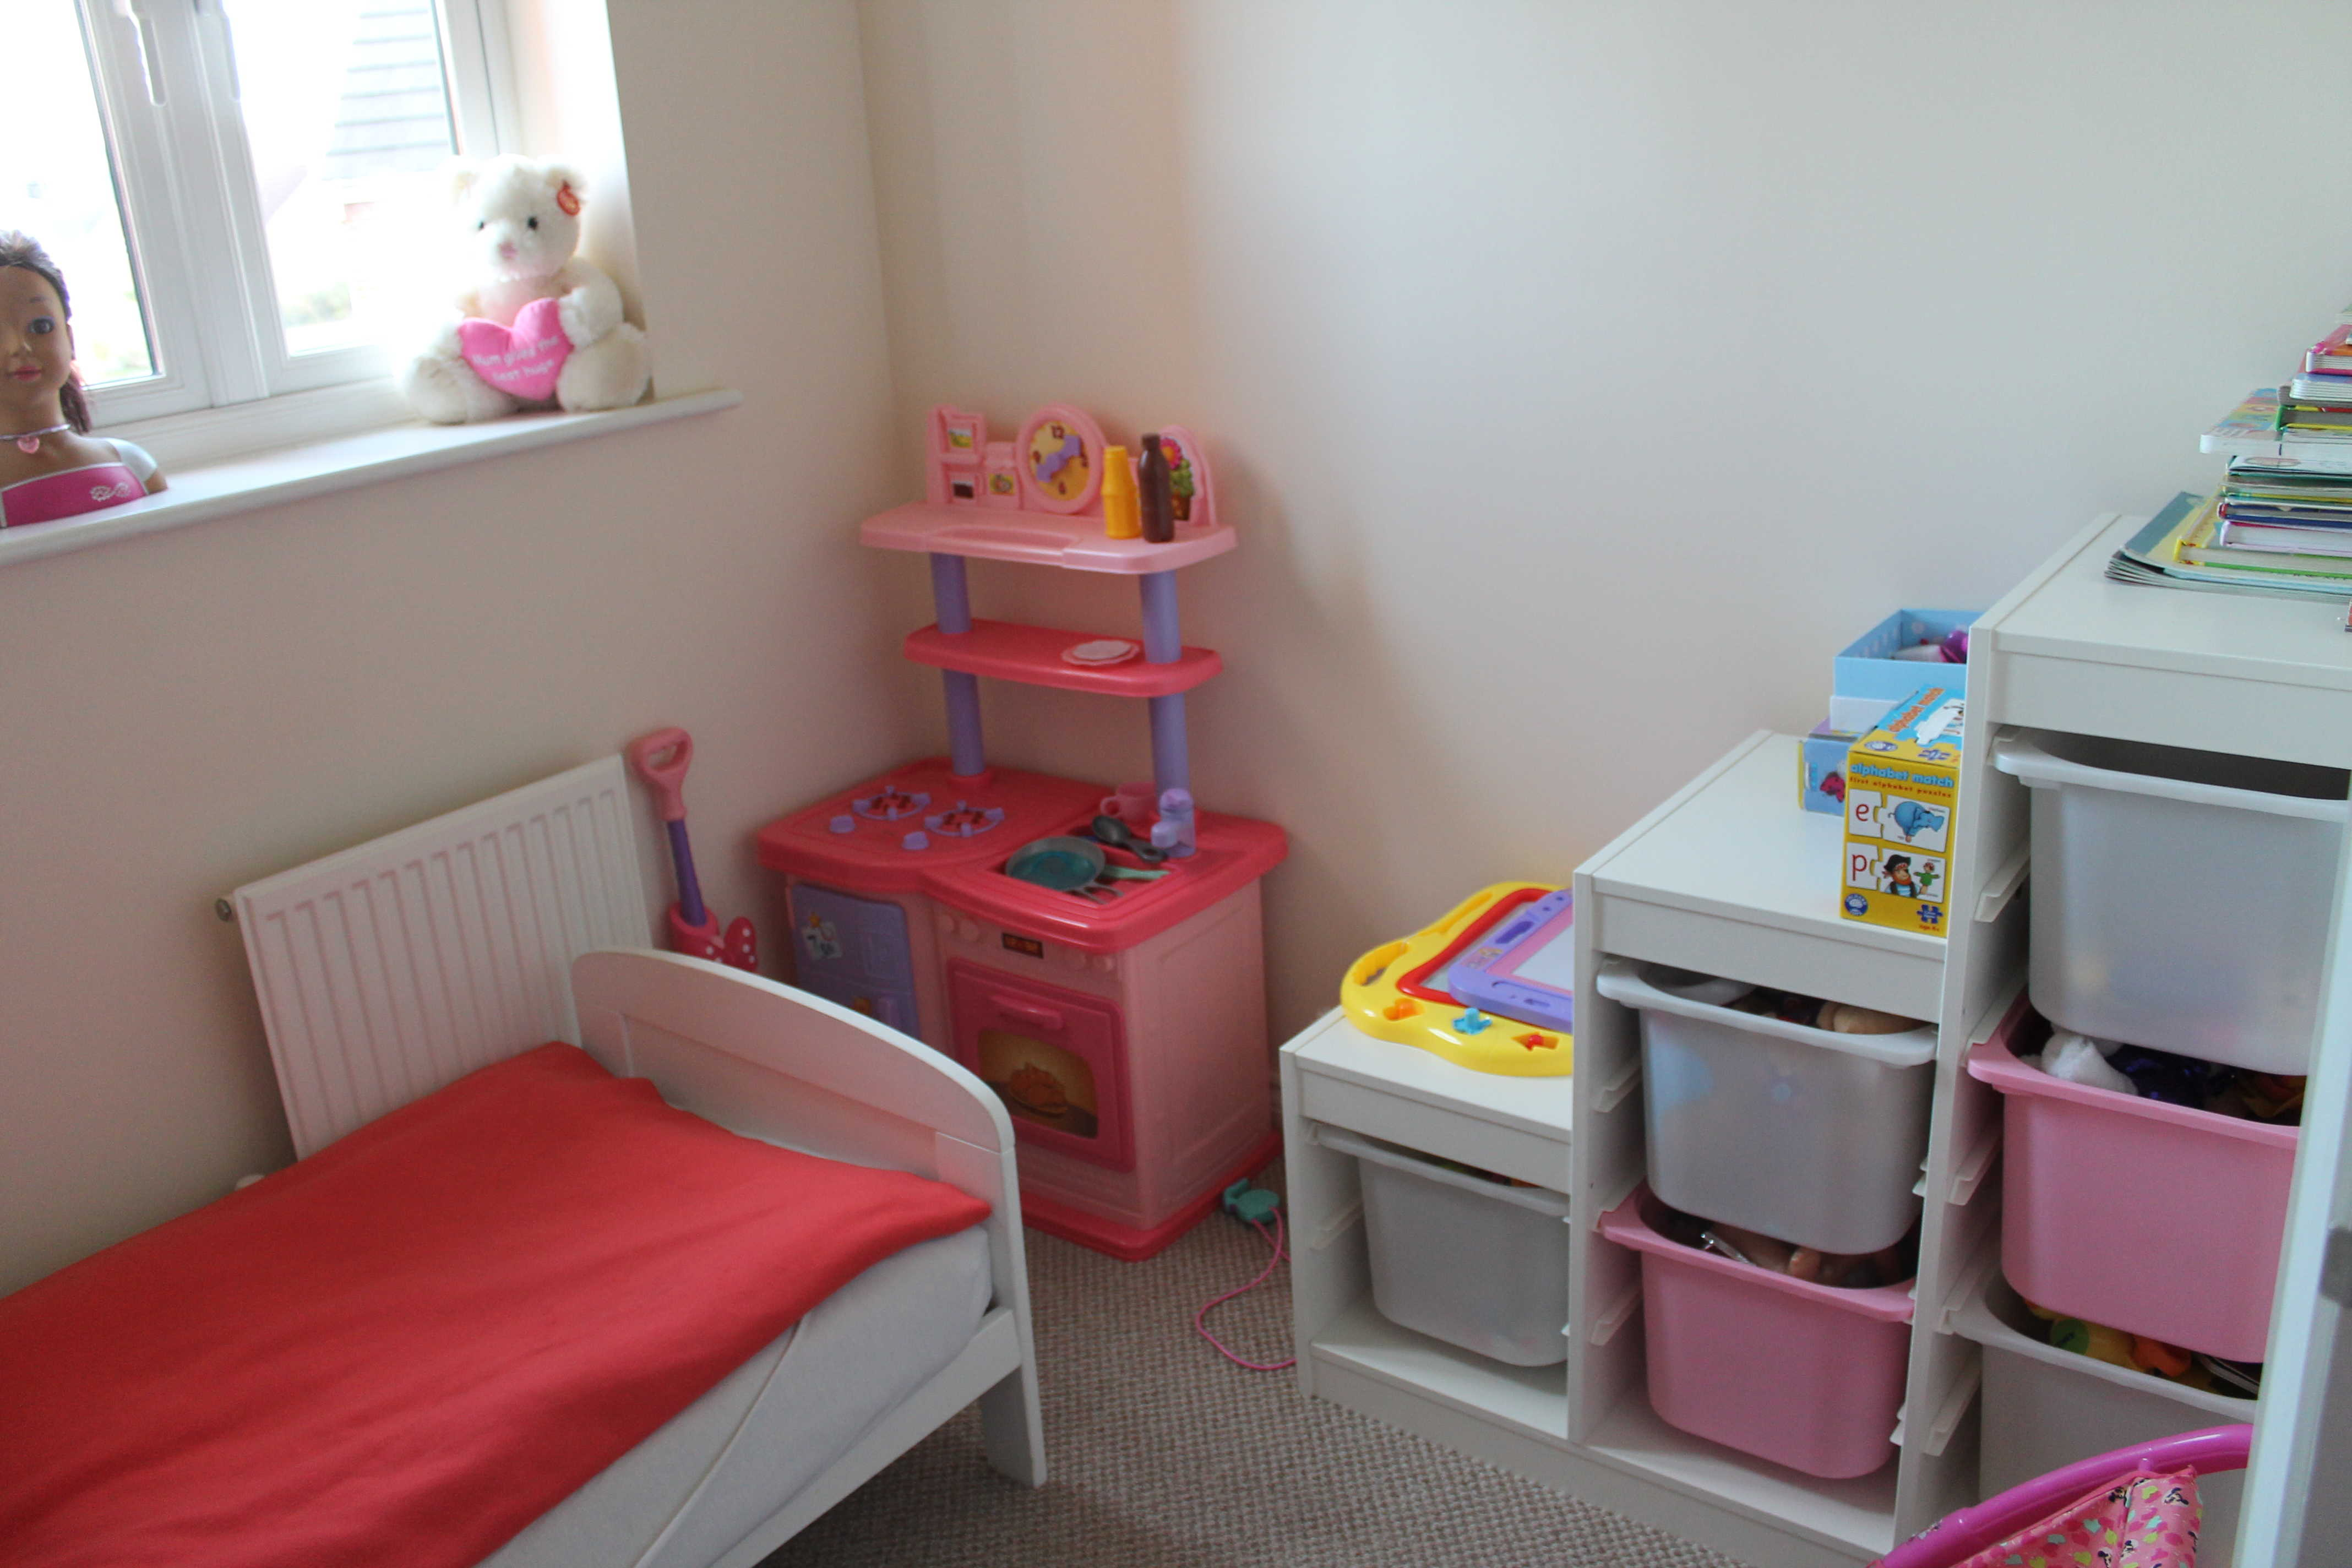 Reallocating: Our New Home In Pictures toddler room